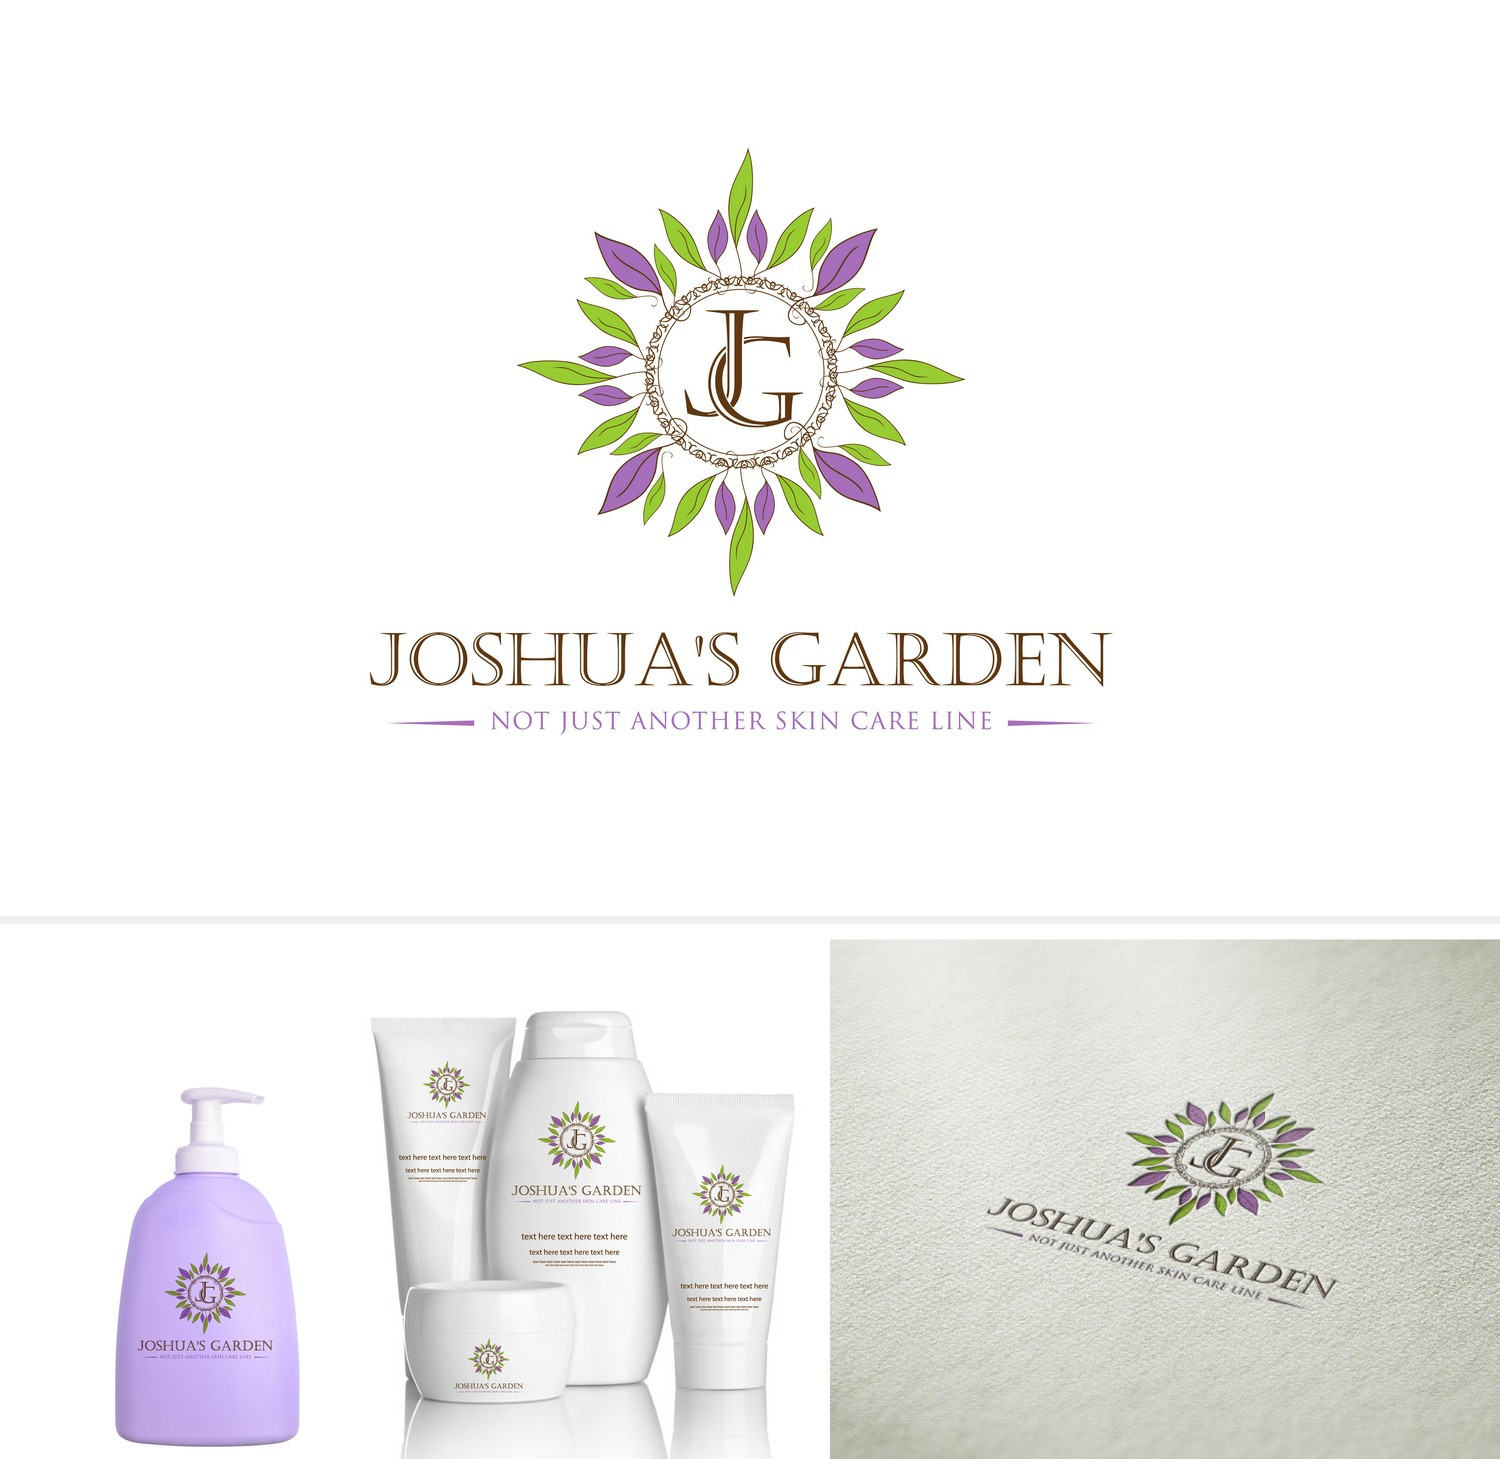 Create an organic logo capturing the essence of our all natural skin care line.